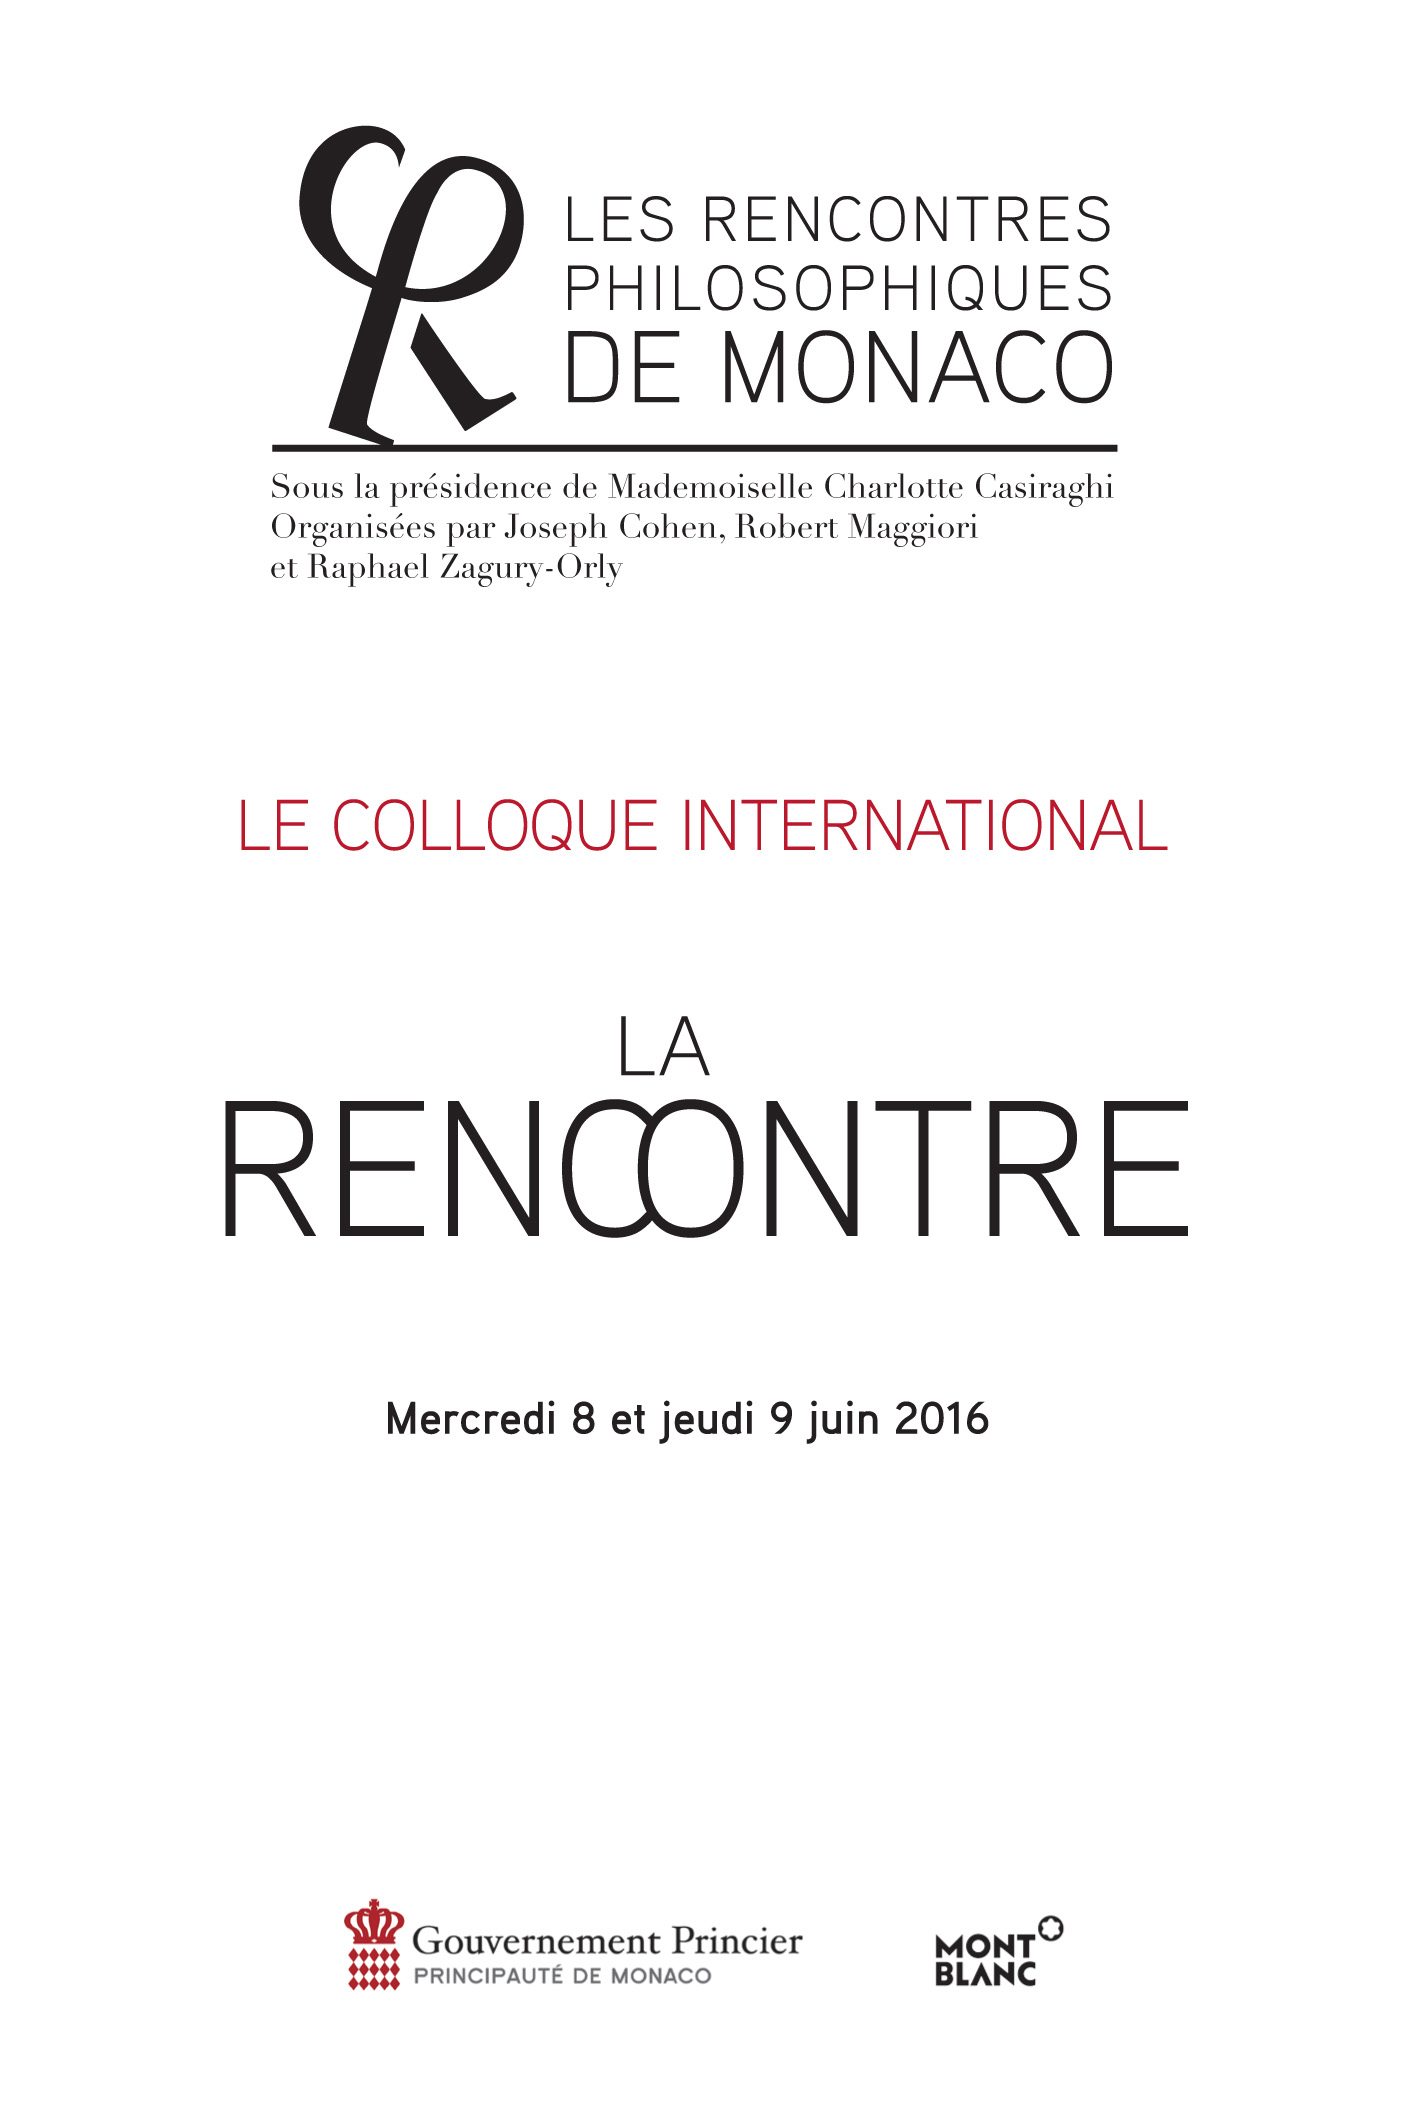 1317, 1317, couv colloque 2016, couv-colloque-2016.jpg, 269549, http://philomonaco.com/wp-content/uploads/2017/02/couv-colloque-2016.jpg, http://philomonaco.com/atelier/philosophie-et-enfance/couv-colloque-2016/, , 2, , , couv-colloque-2016, inherit, 1309, 2017-02-21 14:48:09, 2017-02-21 15:25:04, 0, image/jpeg, image, jpeg, http://philomonaco.com/wp-includes/images/media/default.png, 1417, 2126, Array